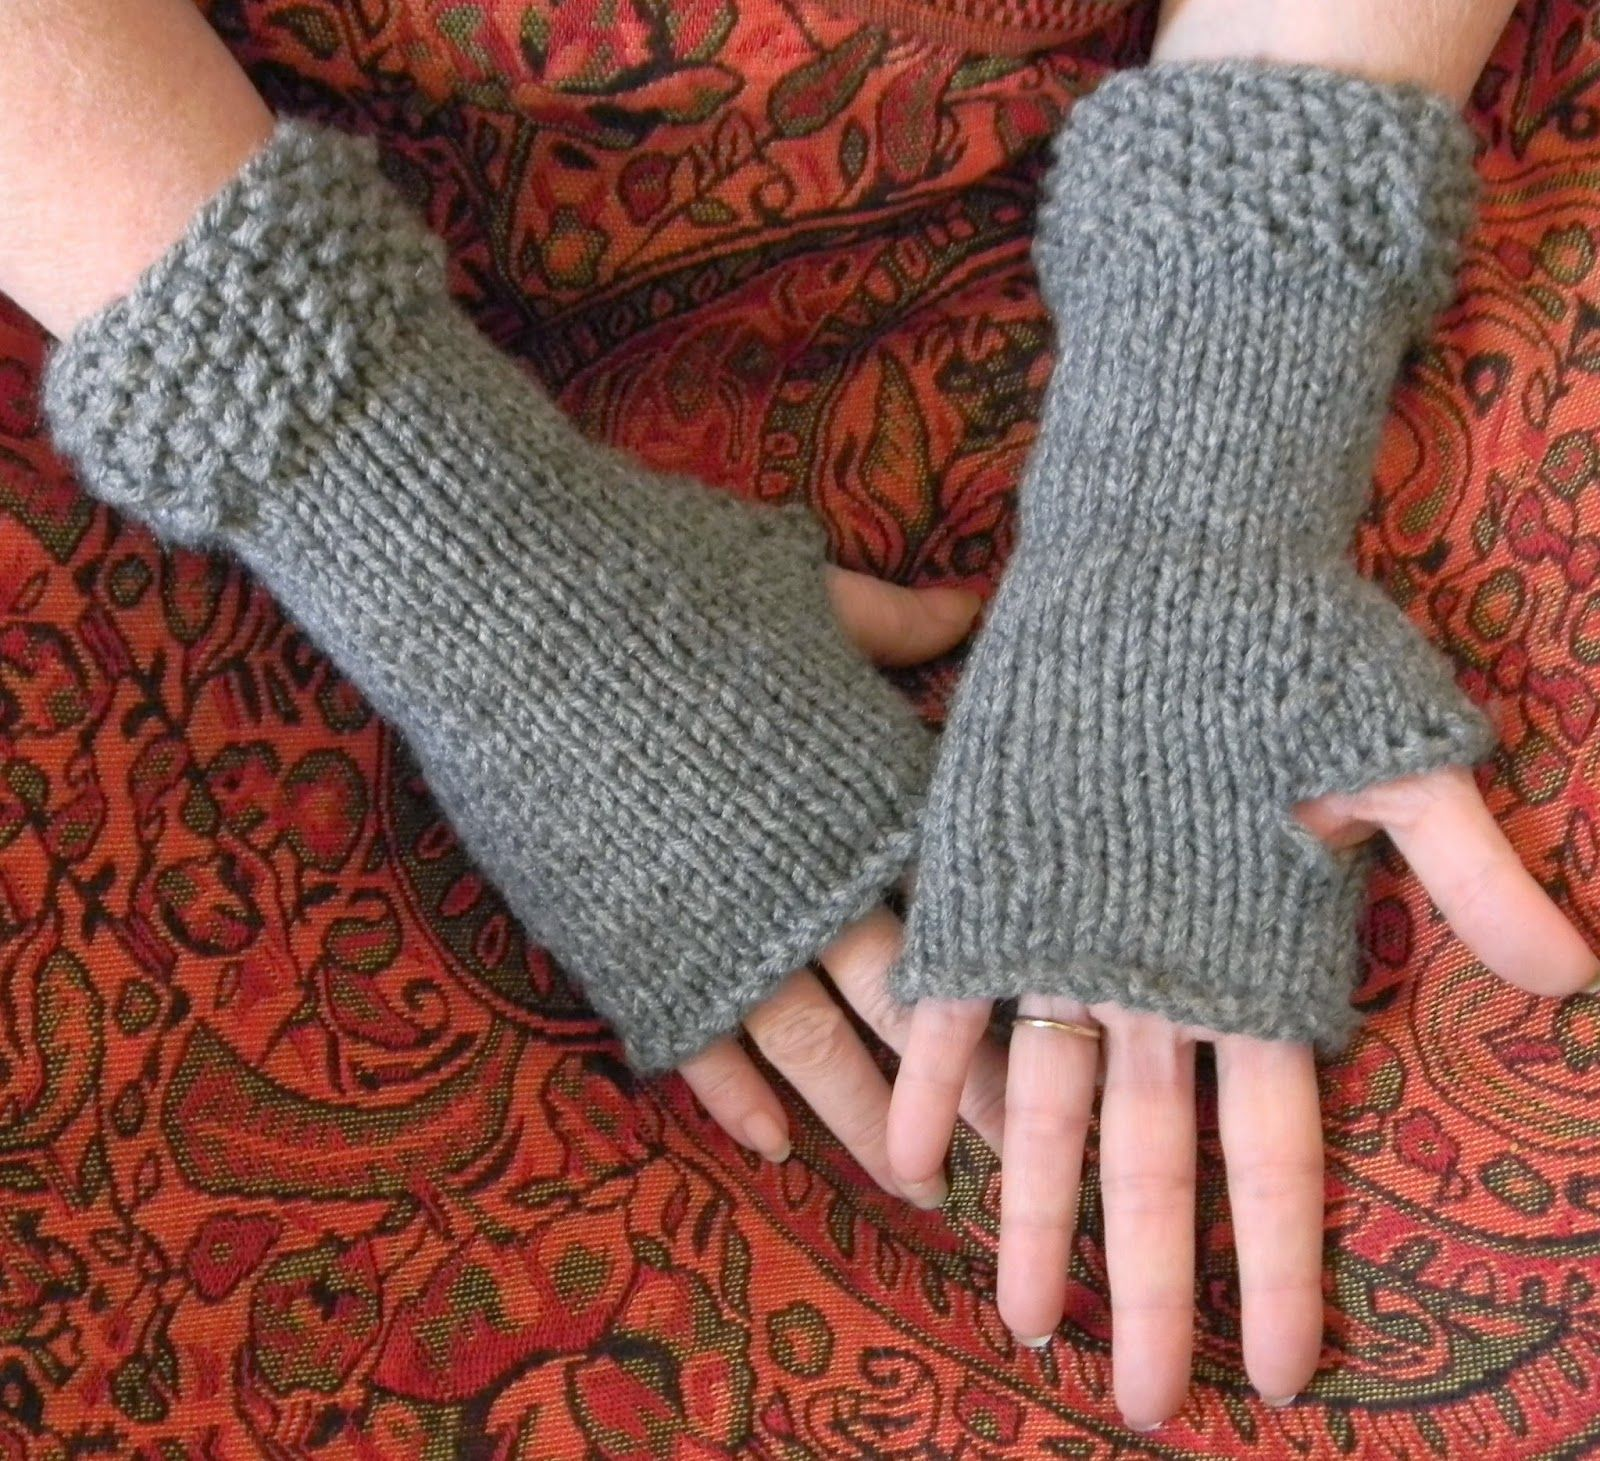 Fingerless Gloves Knitting Pattern Circular Needles Cool Decorating